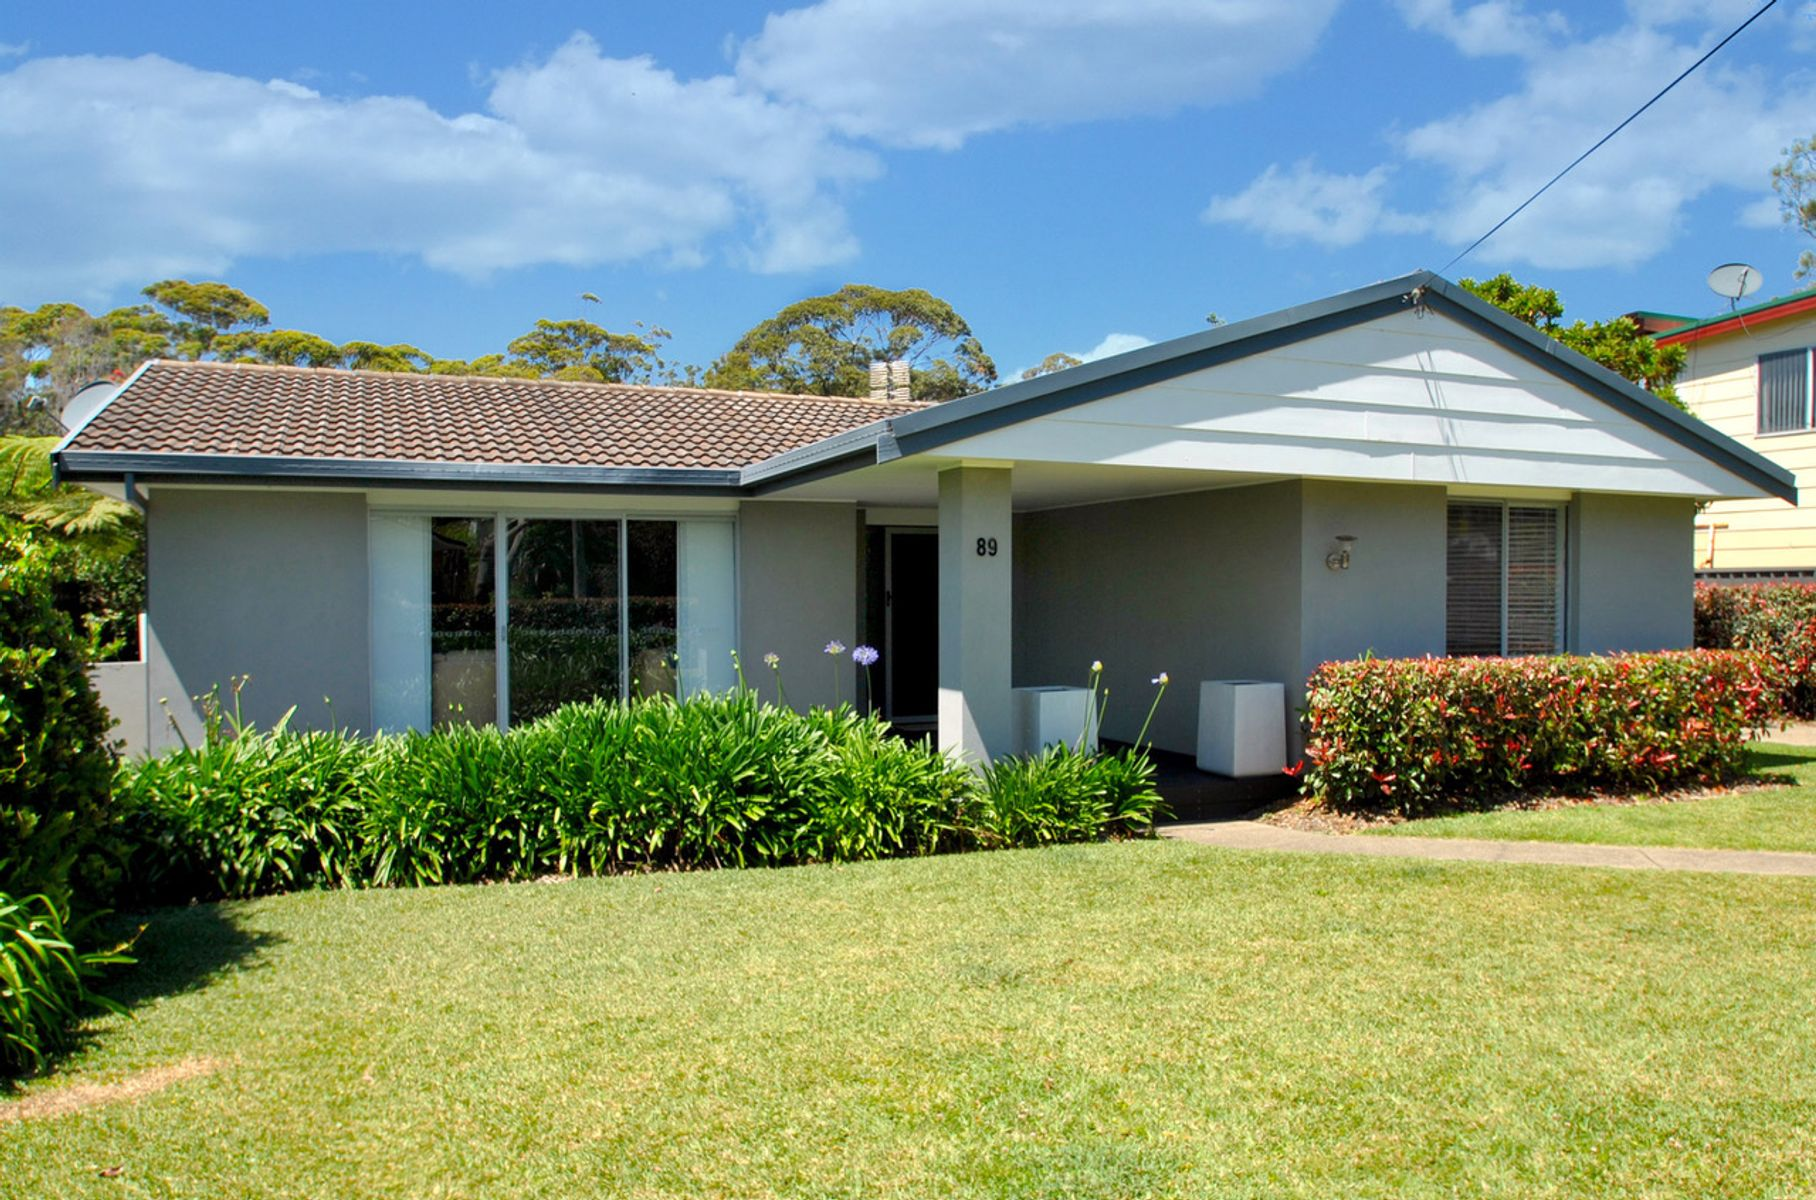 89 Greenbank Grove, Culburra Beach, NSW 2540